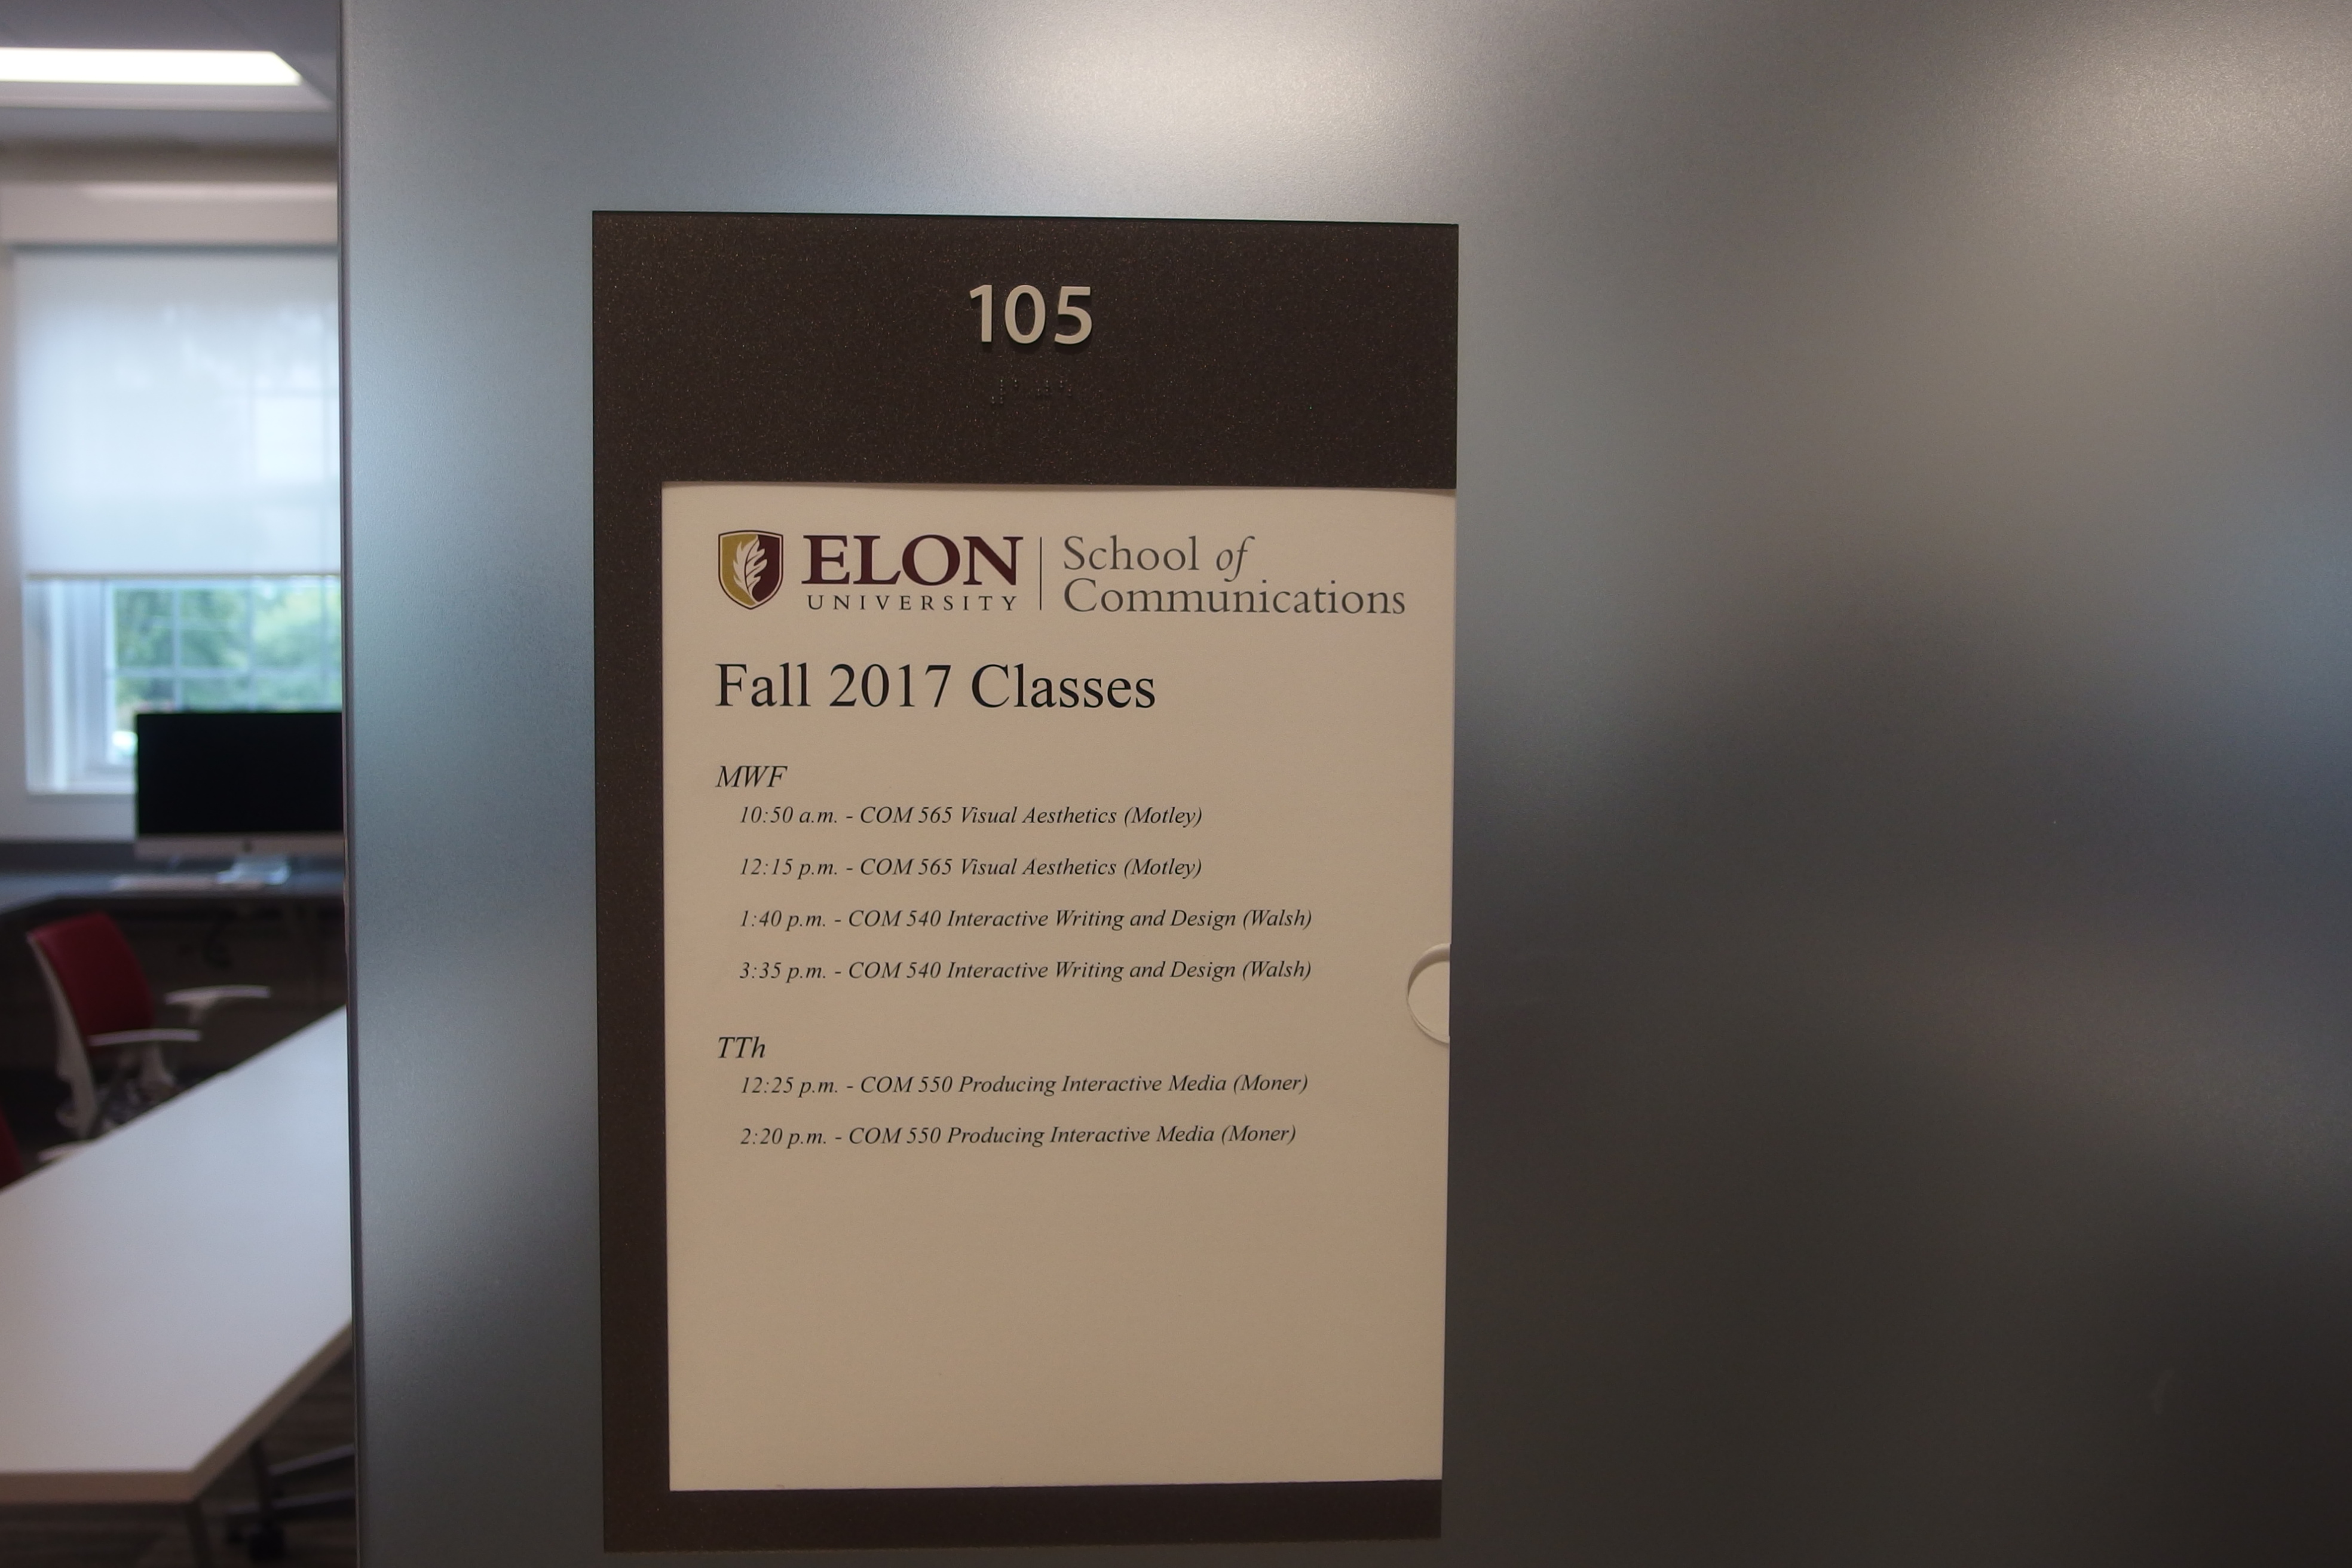 Photo of Long 105 room number with room schedule information below